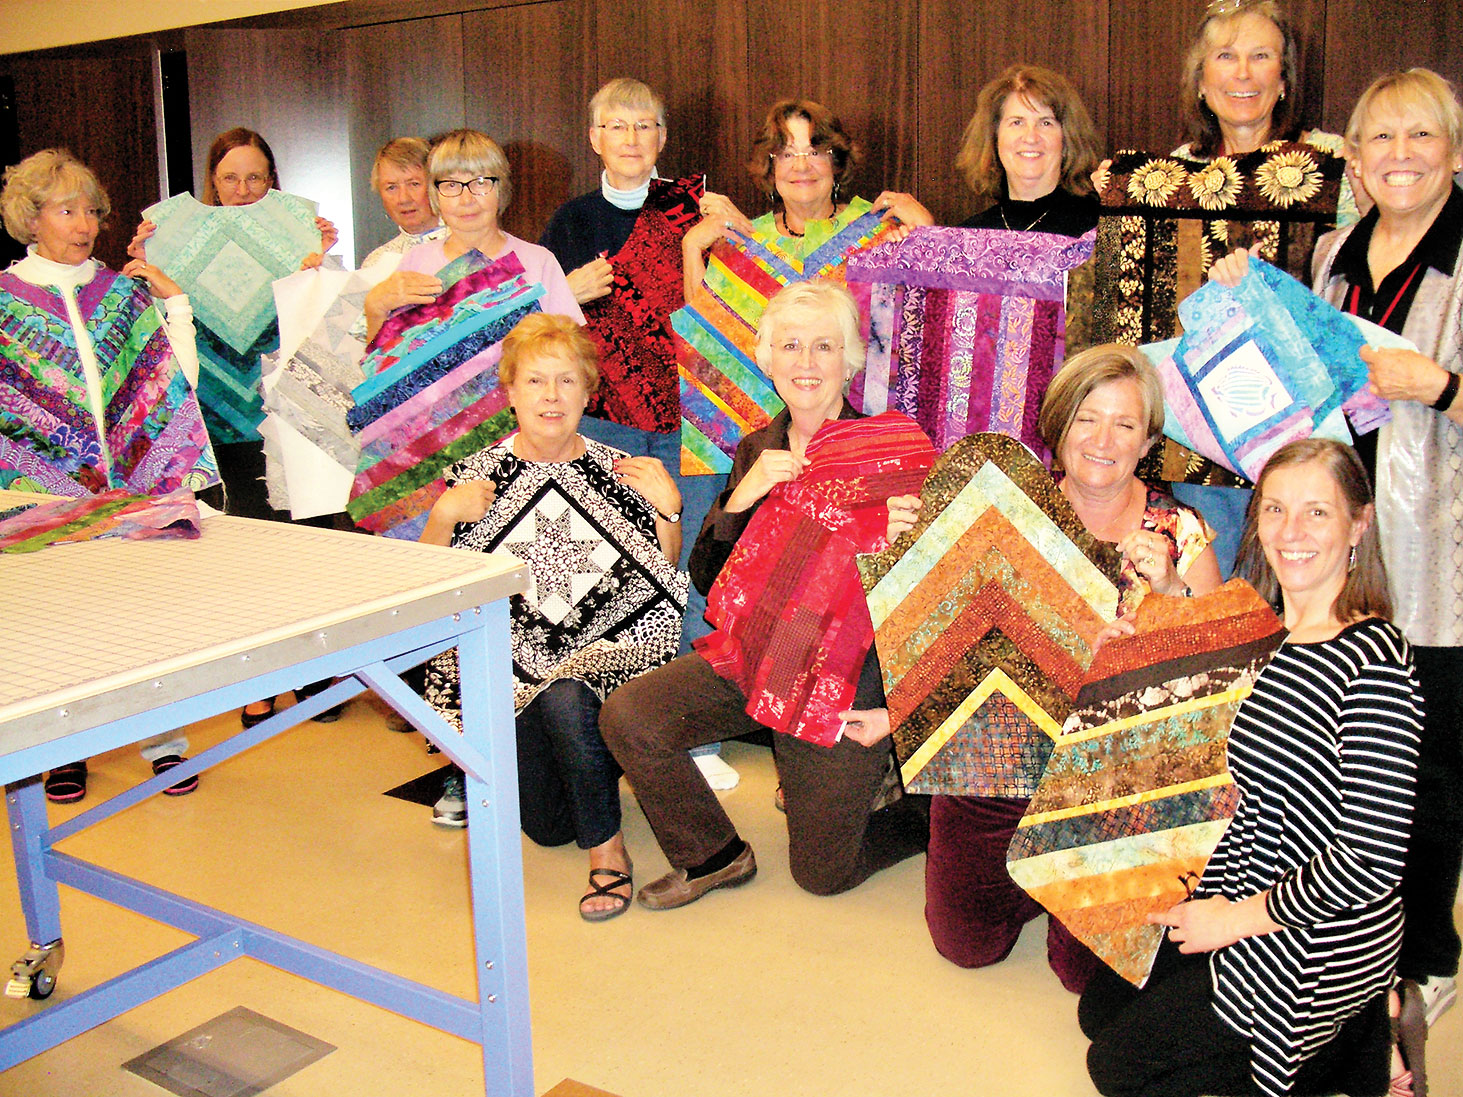 Back row, left to right: Kay Burrows, Sharon Krueger, Marjorie Mitchell (hidden), Liz Knaff, Paula Sween, Sharon Frank, Colleen Curran, Maryellen Mencimer and Sue Norris; front row: Carol Bisio, Pam Smith, Rosie Epler and Janice Roy